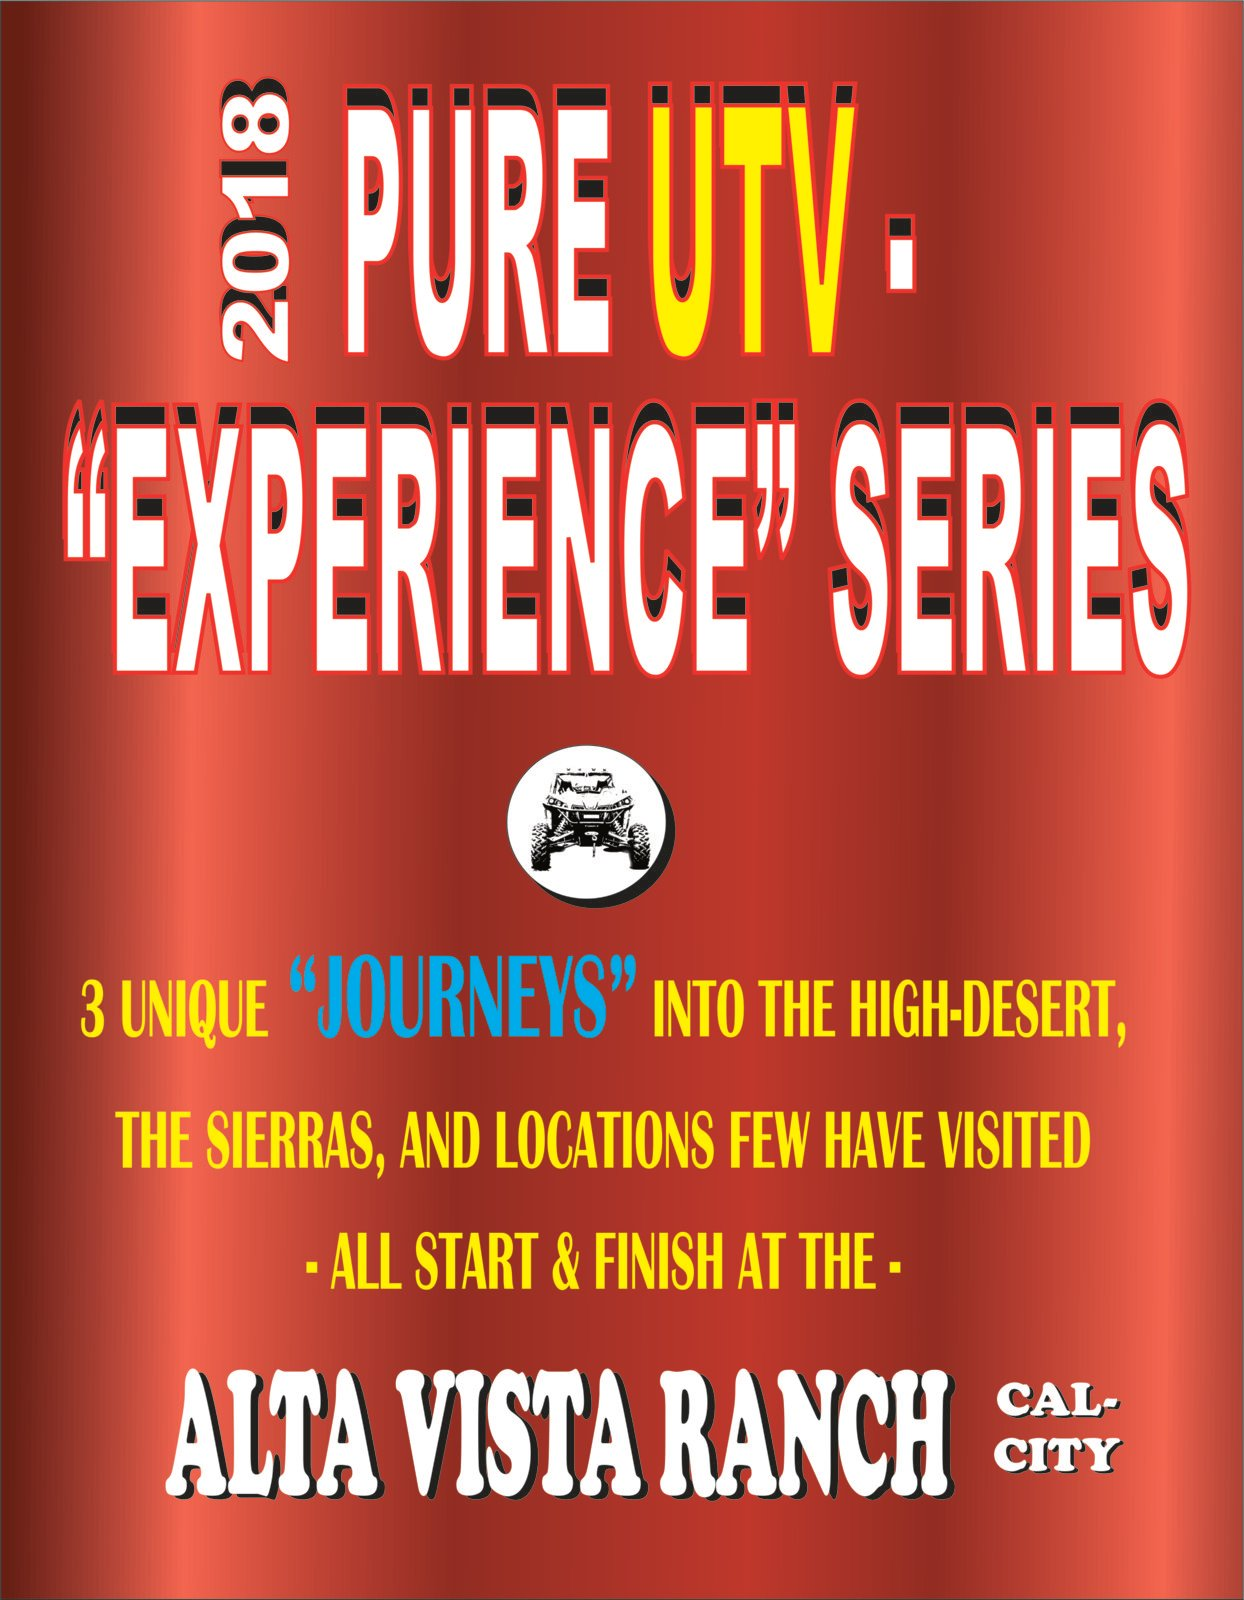 18-PURE UTV EXPERIENCE - FACEBOOK-ADS-Page5-May14.jpg